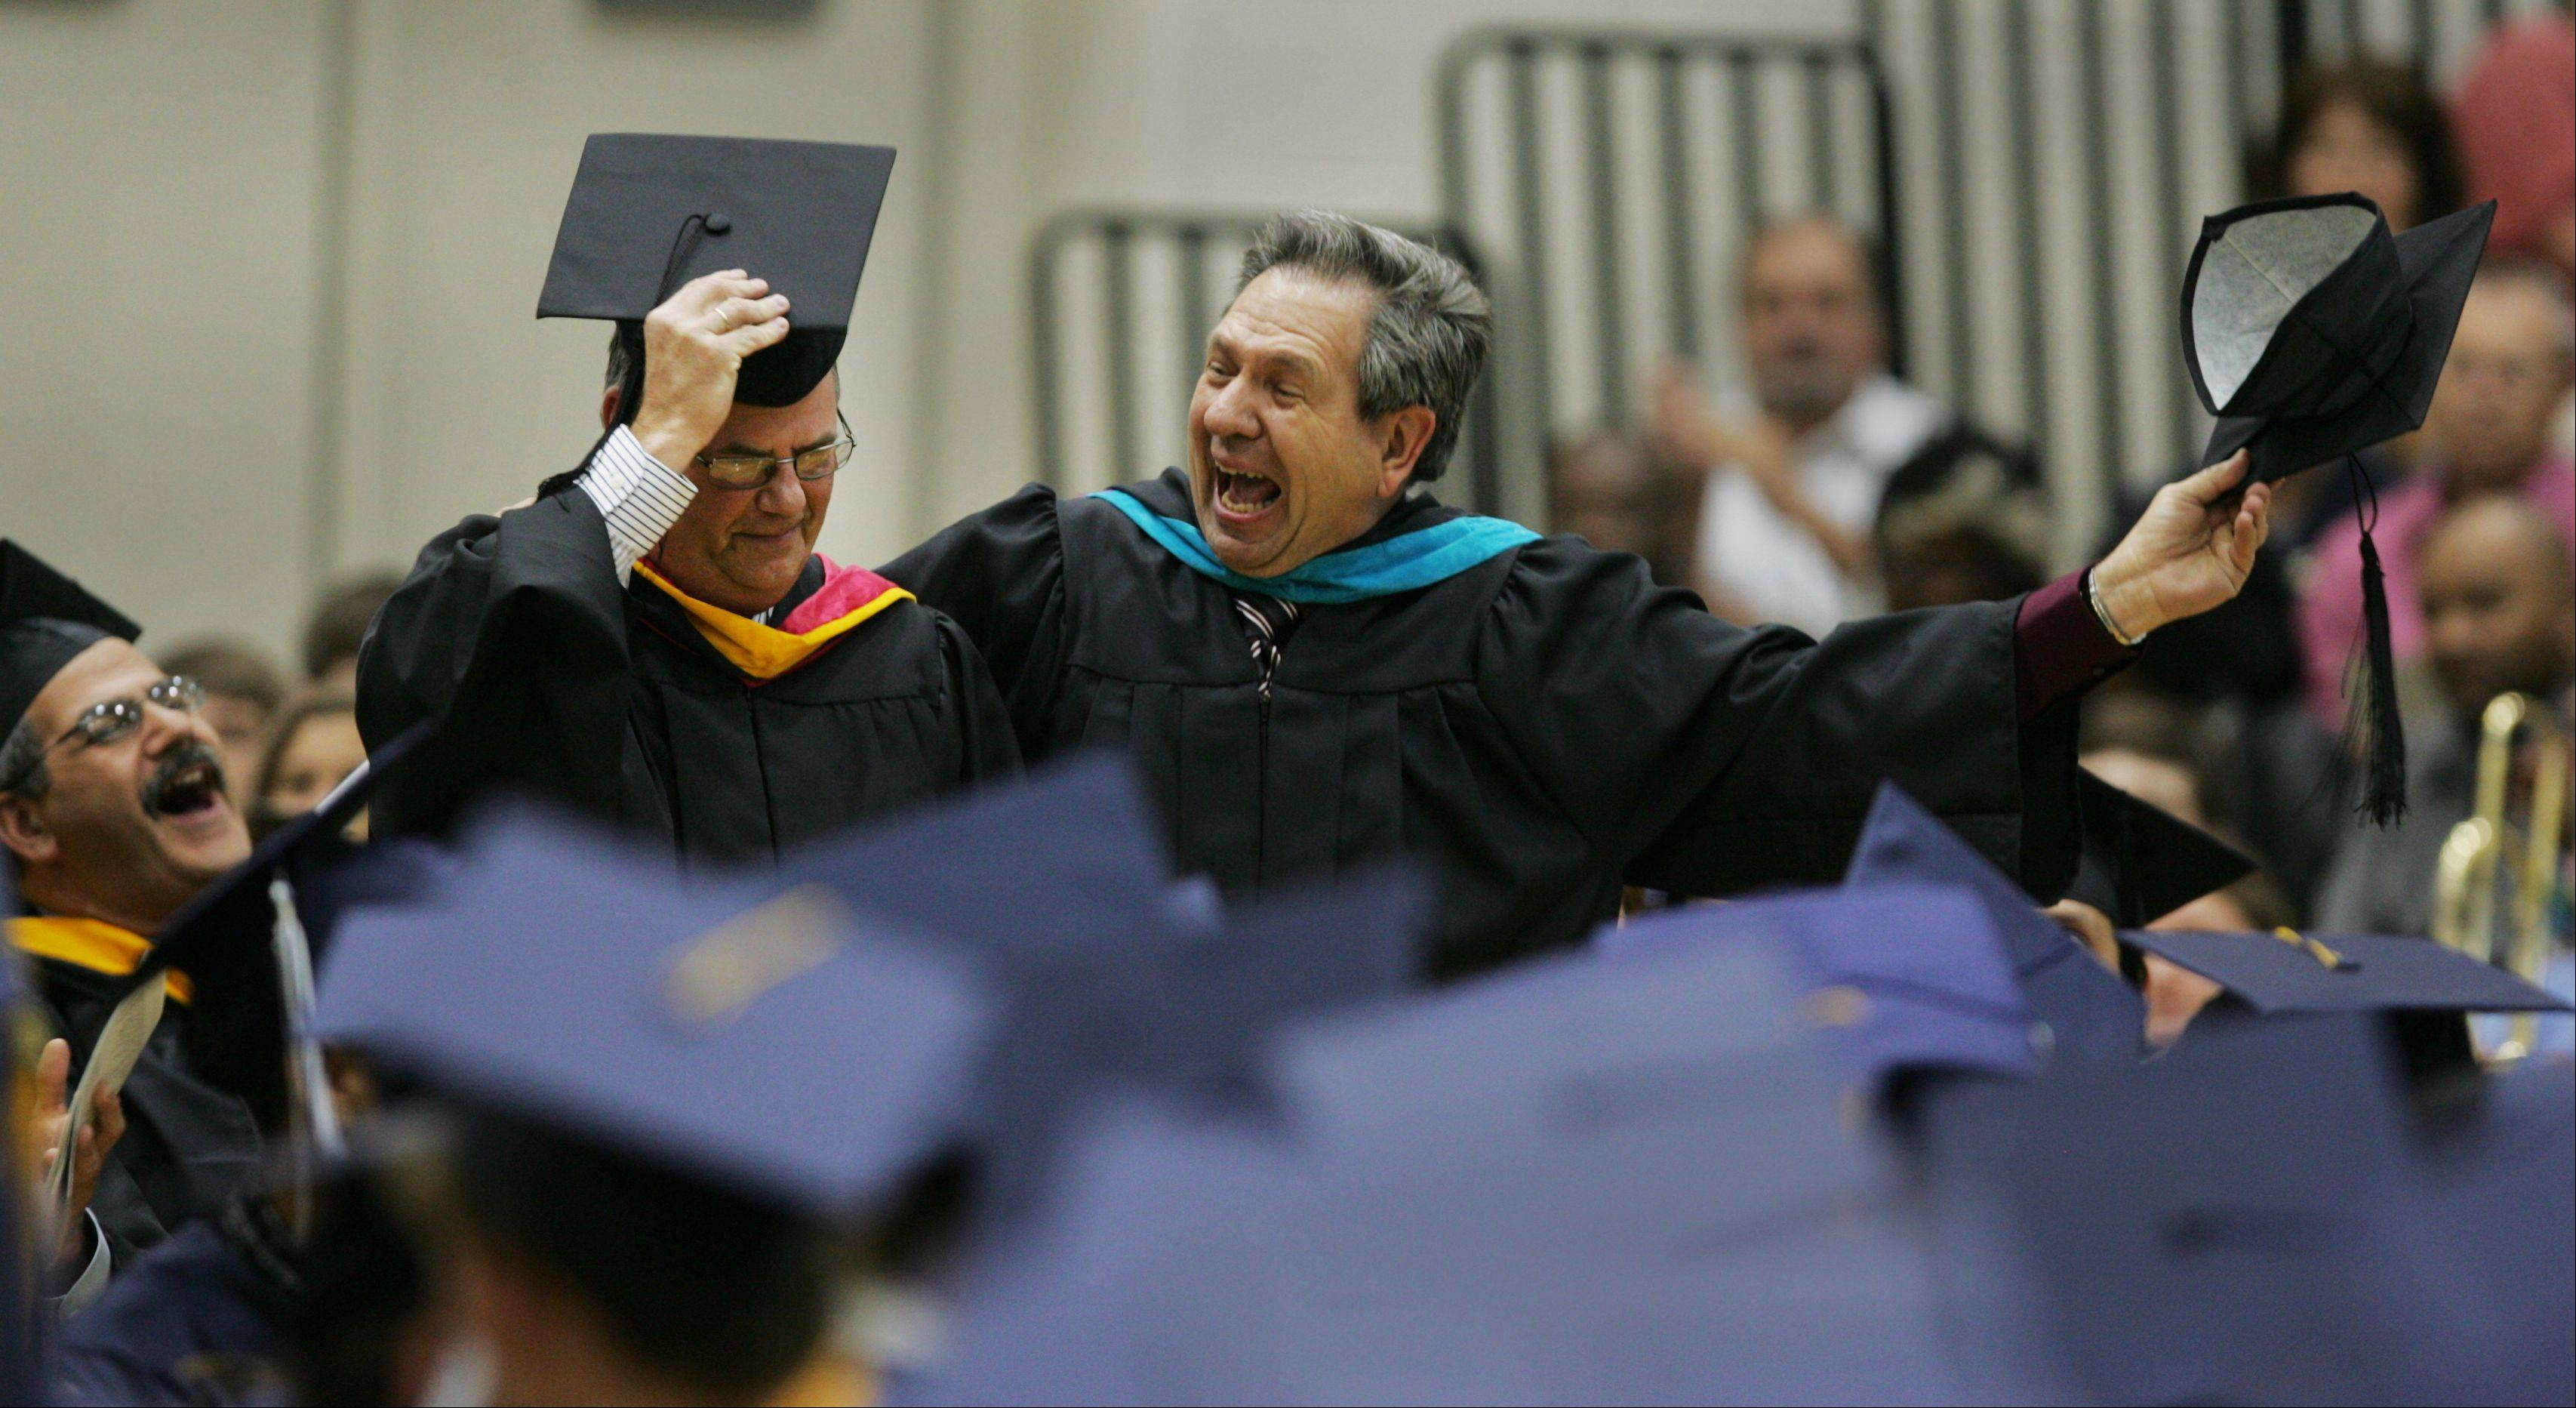 Retiring Lisle High School teachers Mike Coit, left, and Ken Jakalski, right, are applauded for their service, during graduation ceremonies. One hundred forty-five Lisle students graduated.